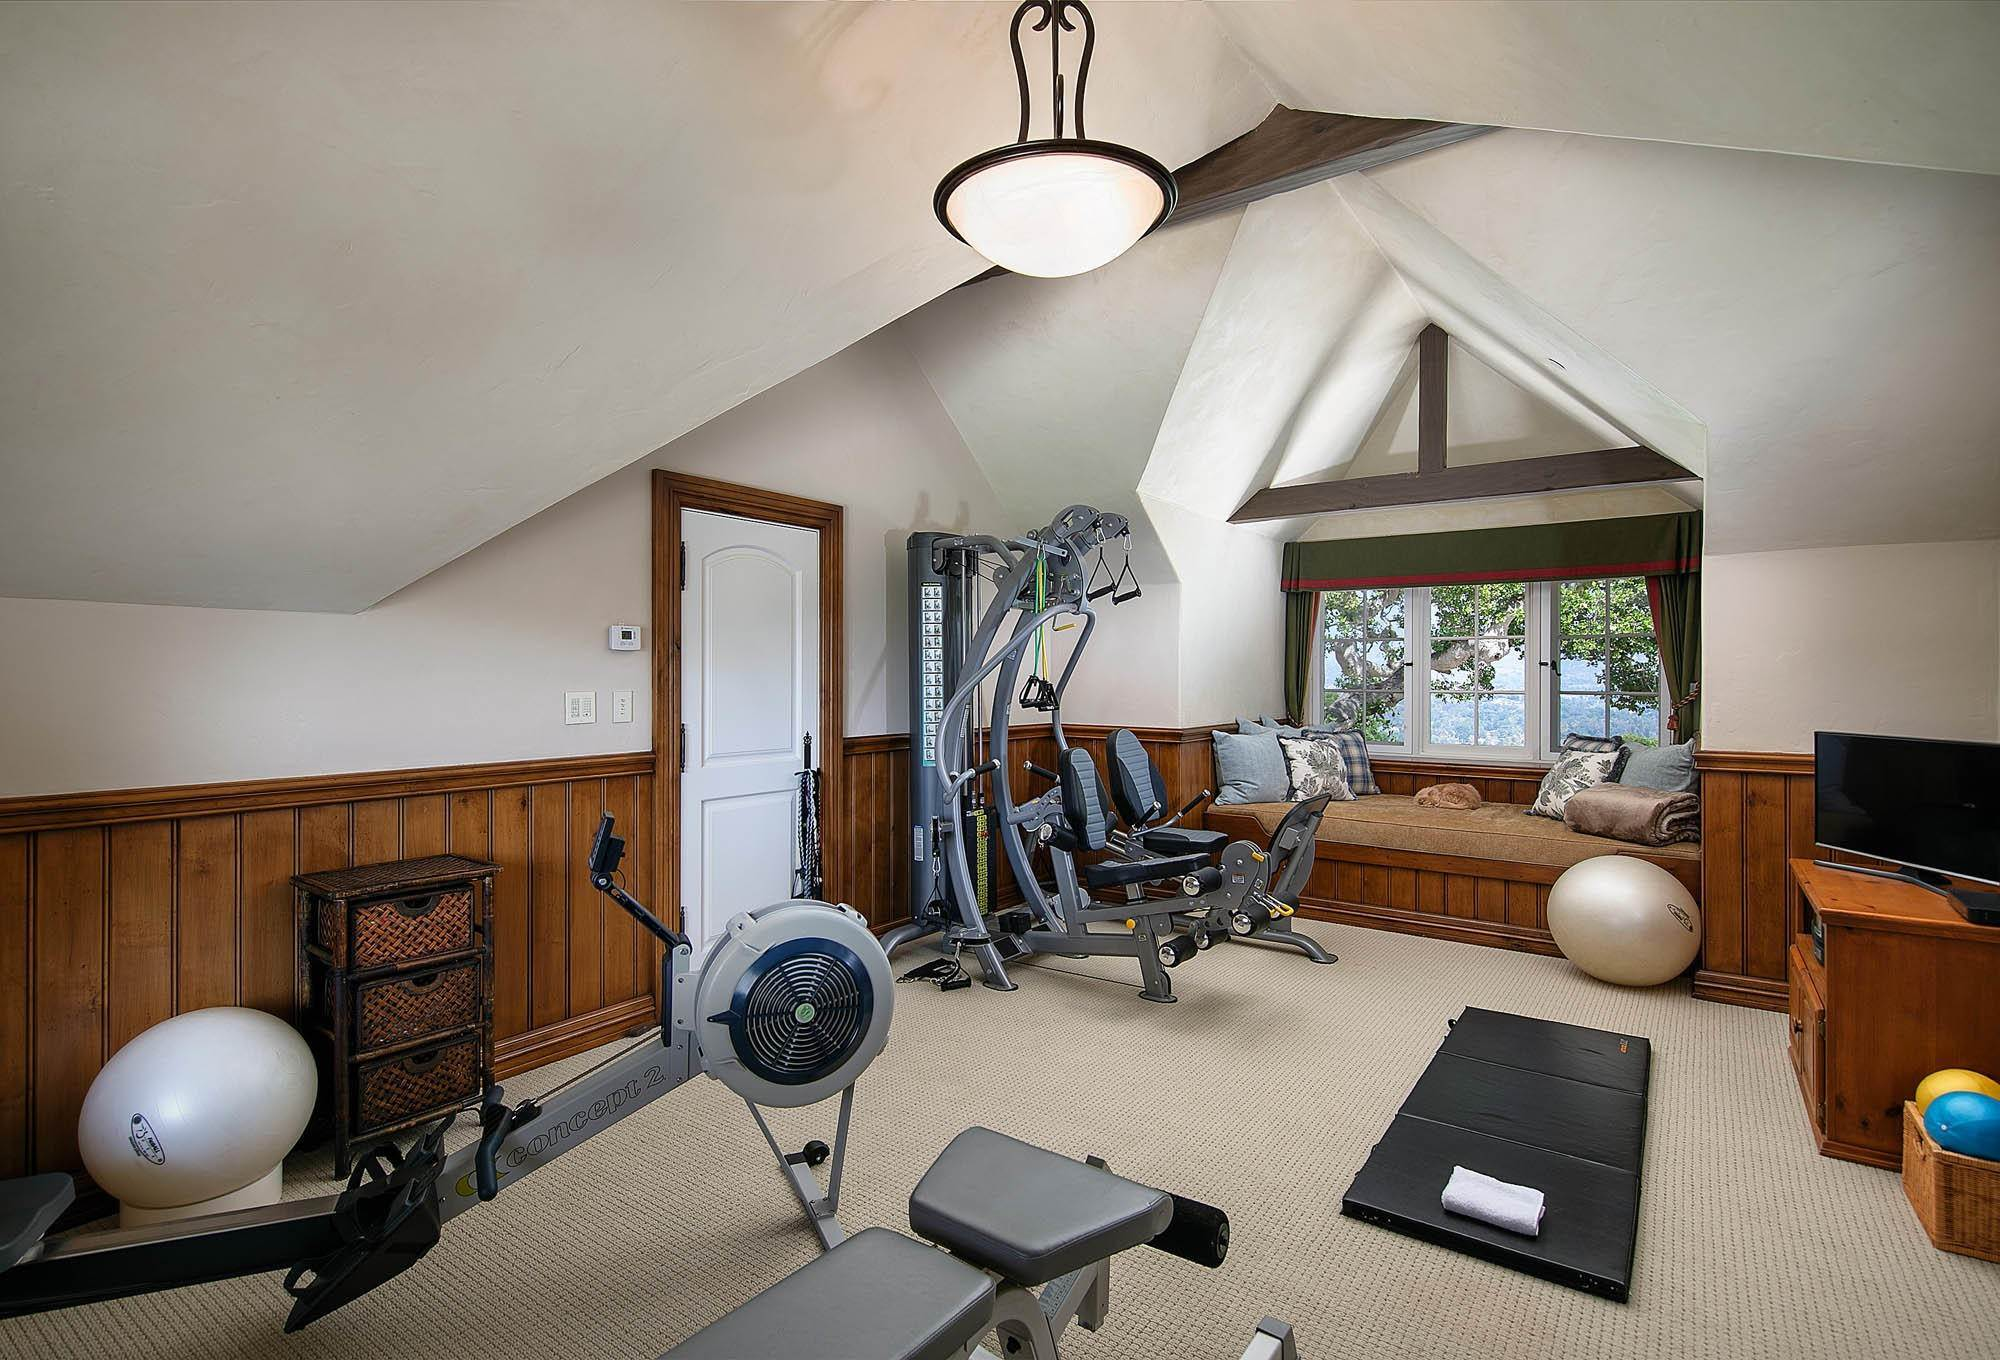 19. Estate for Sale at 4180 Cresta Avenue Santa Barbara, California 93110 United States